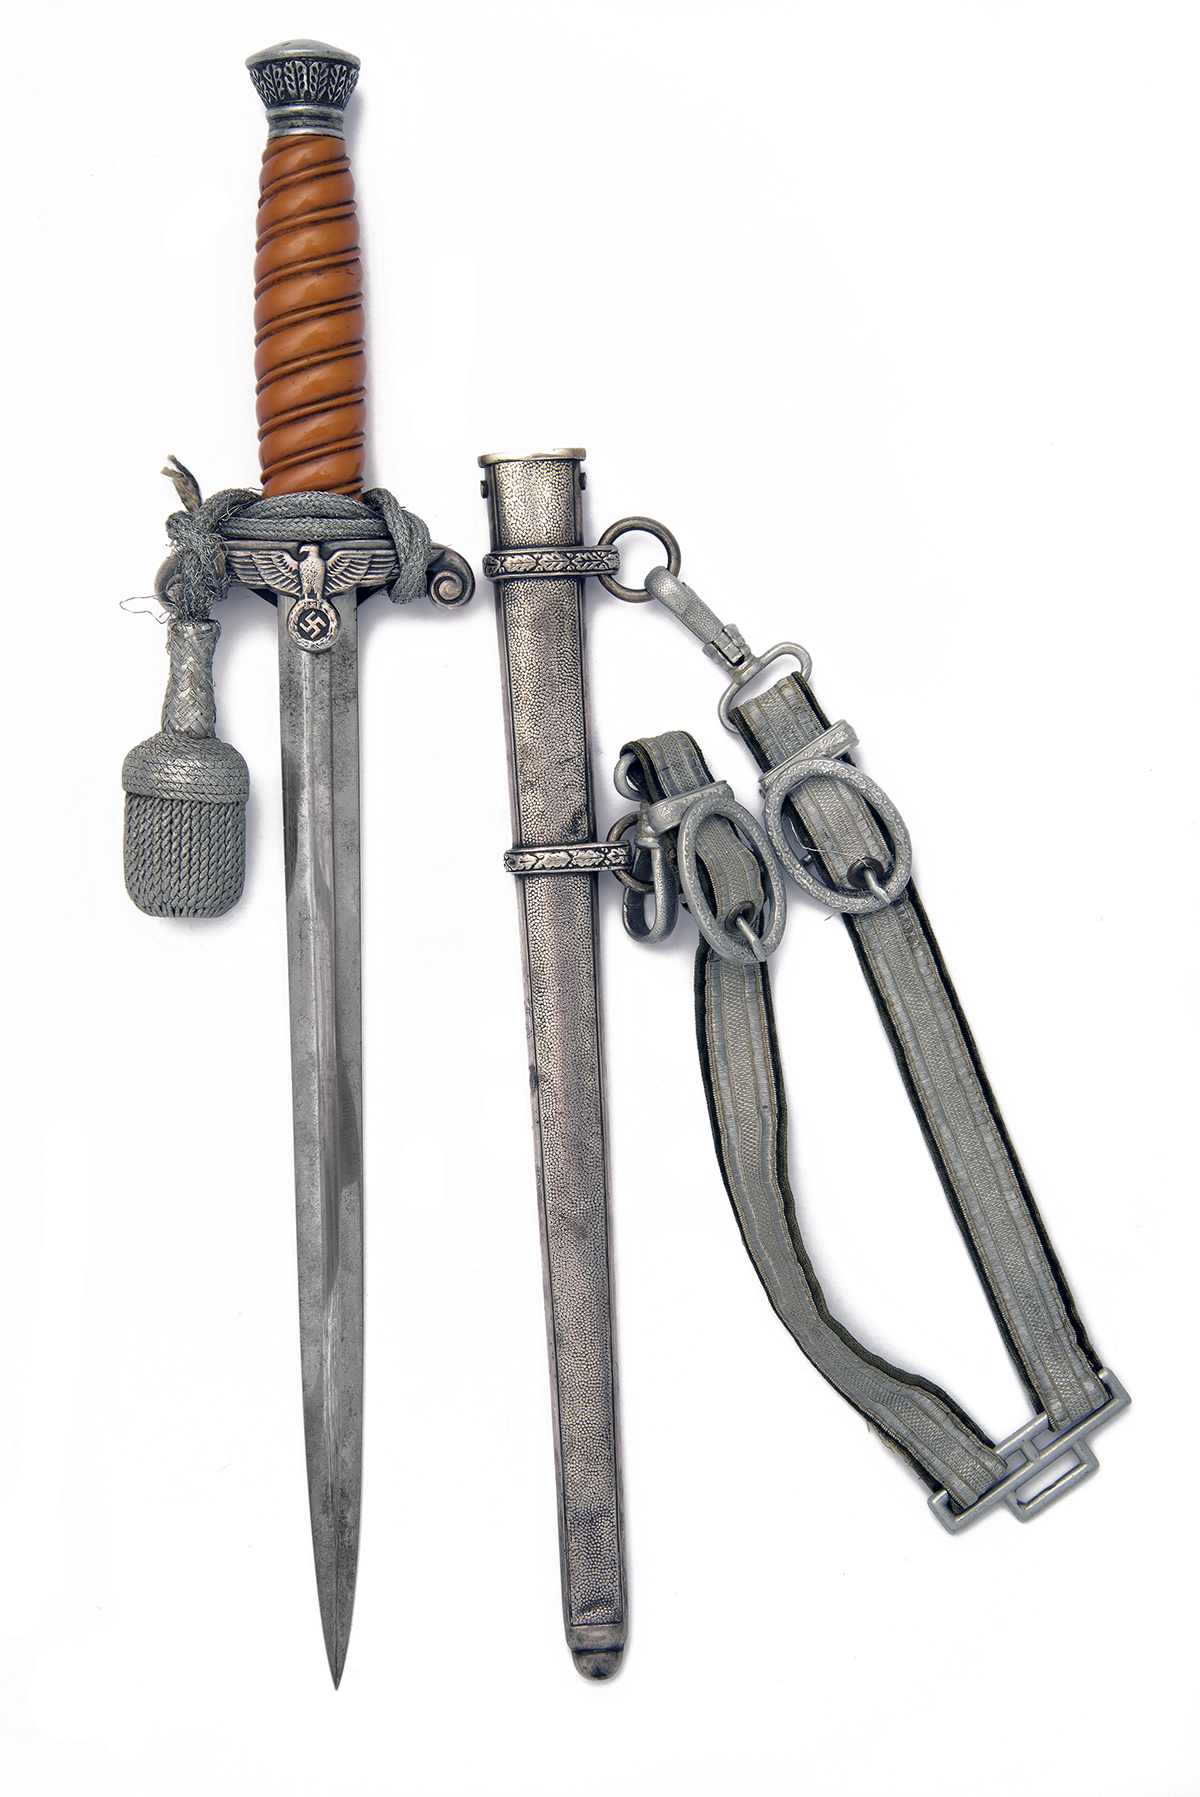 ALCOSO, SOLINGEN A WORLD-WAR TWO GERMAN ARMY DRESS DAGGER, World War Two production in nickel silver - Image 2 of 4